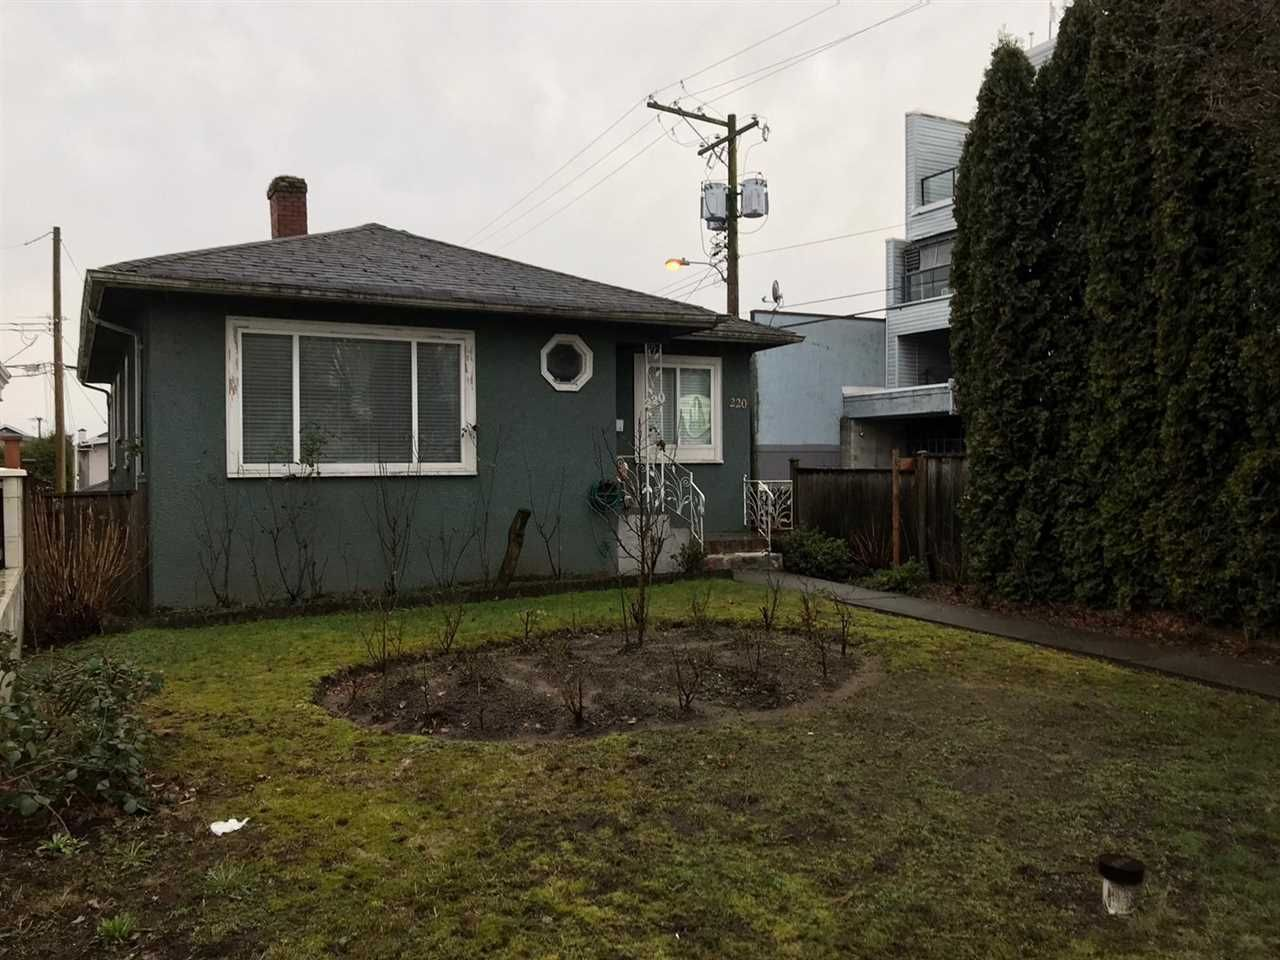 Main Photo: 220 E 49TH Avenue in Vancouver: South Vancouver House for sale (Vancouver East)  : MLS®# R2549802